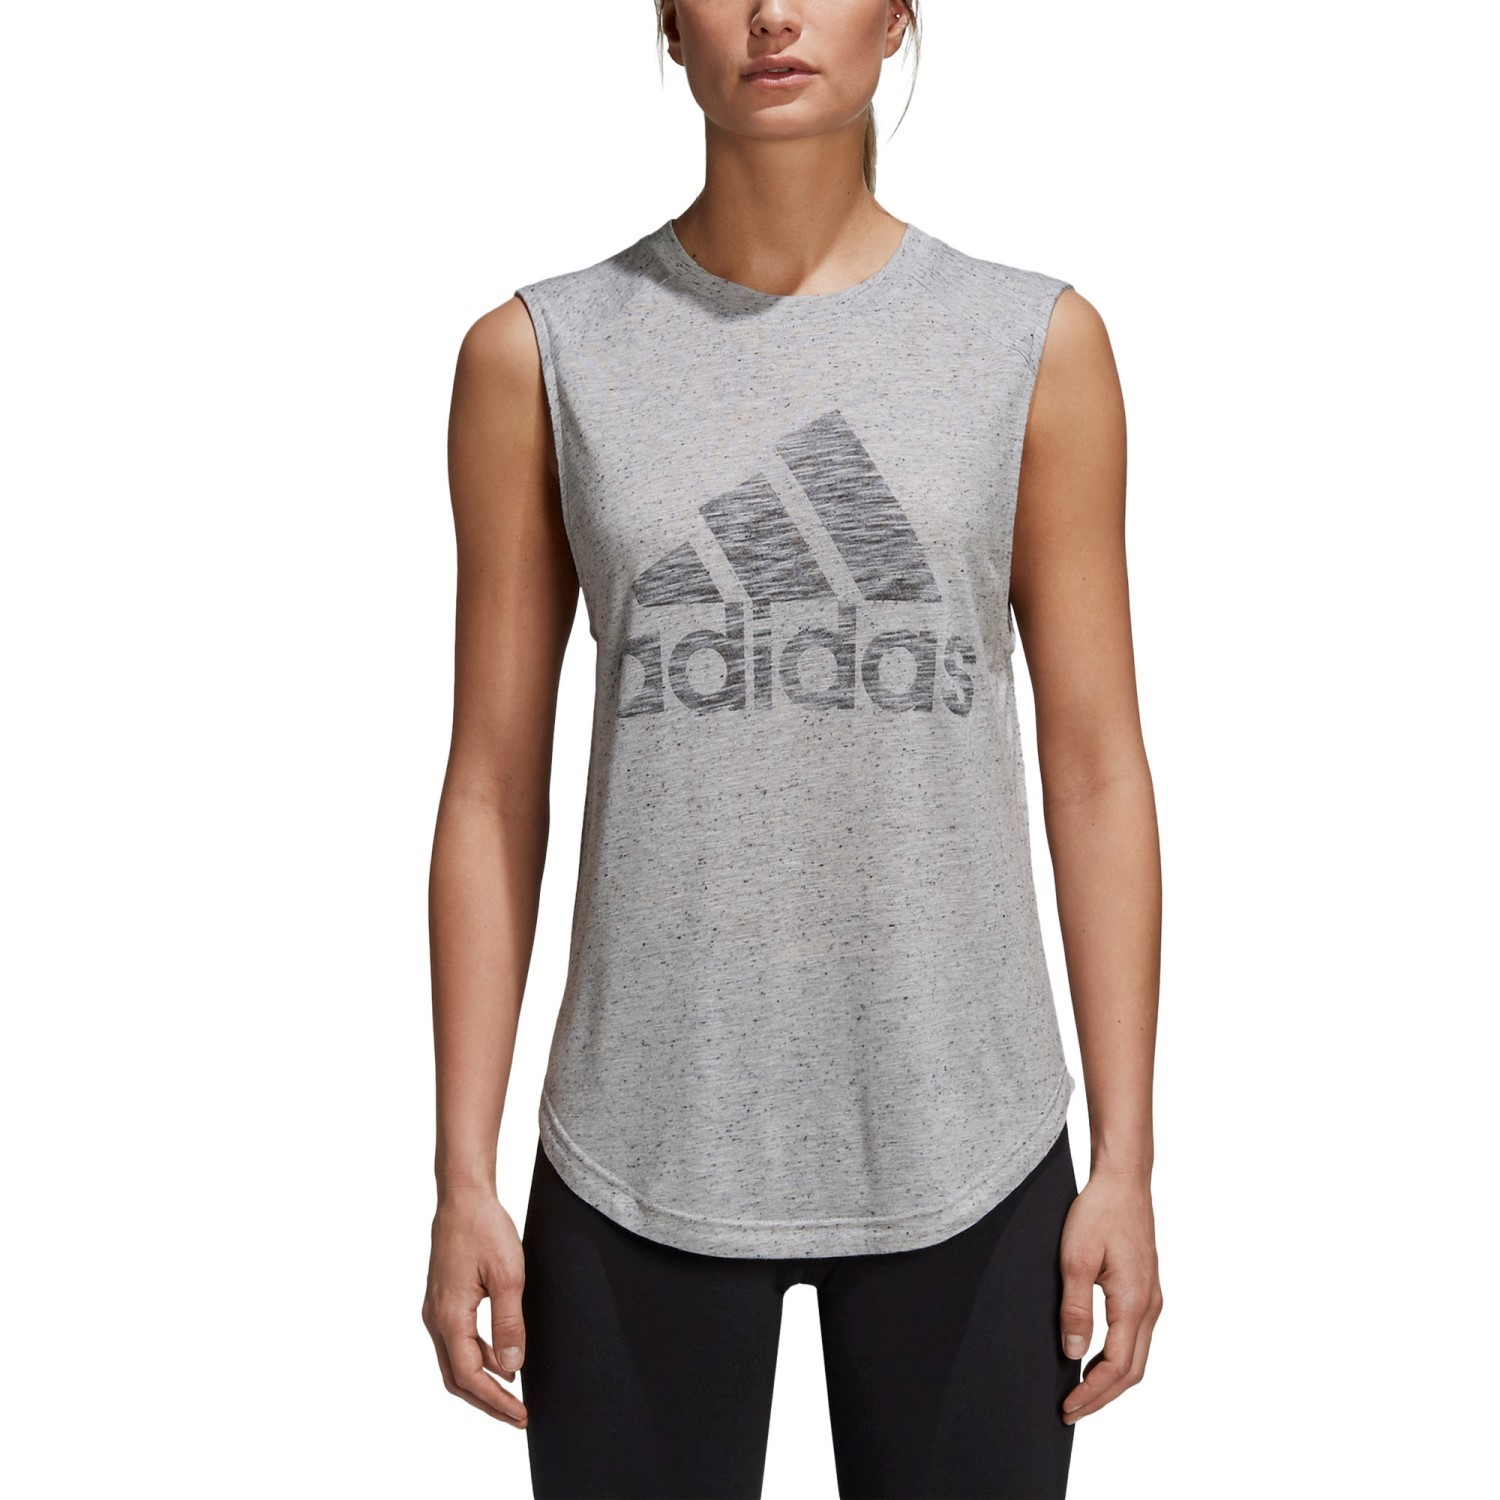 official photos 1a1c2 d6a83 Adidas ID Winners Womens Muscle Tank Top - Grey